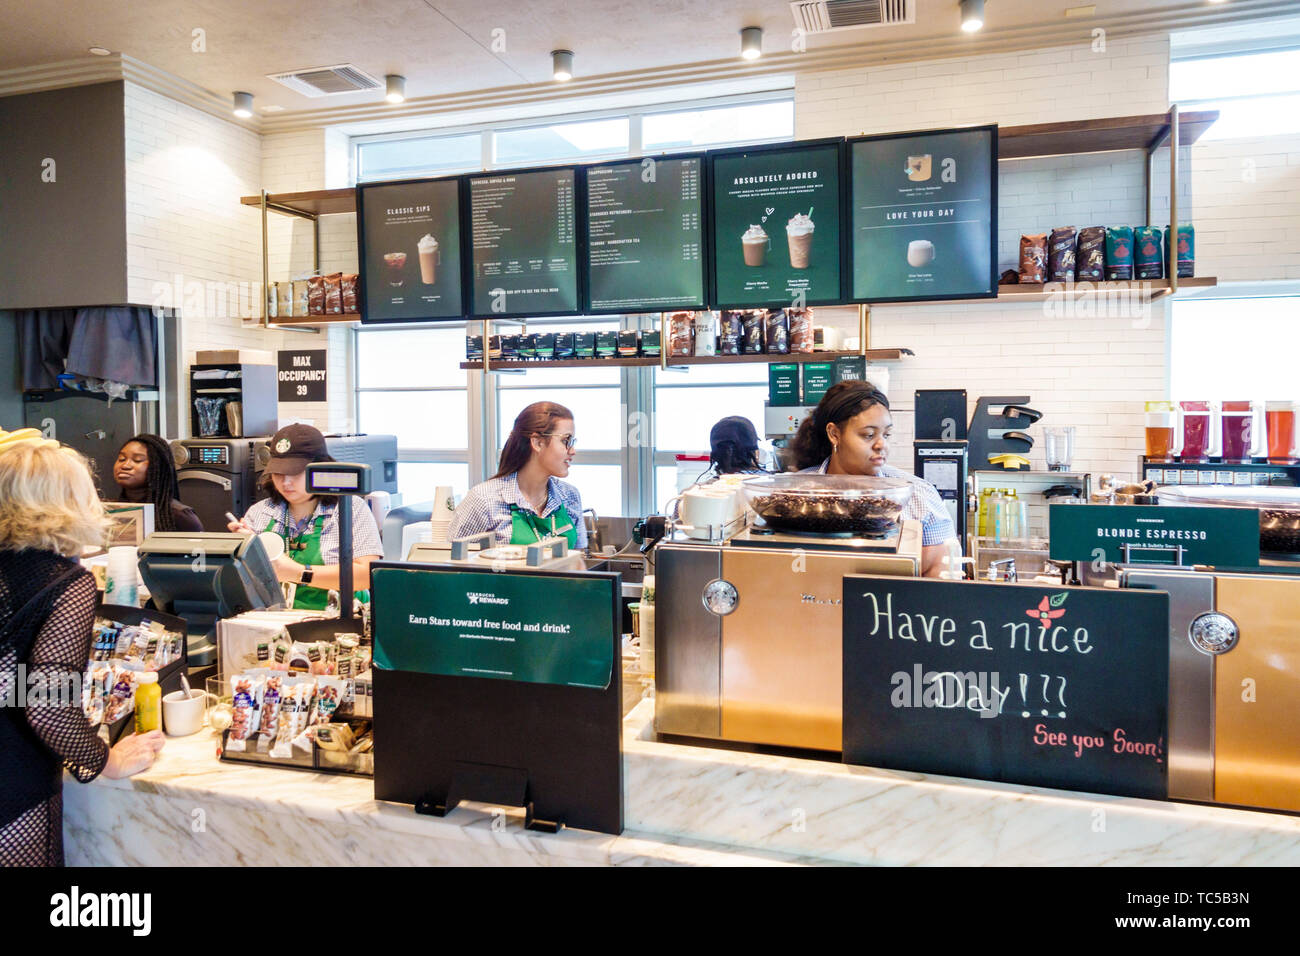 Miami Beach Florida South Beach Starbucks Coffee Cafe Inside